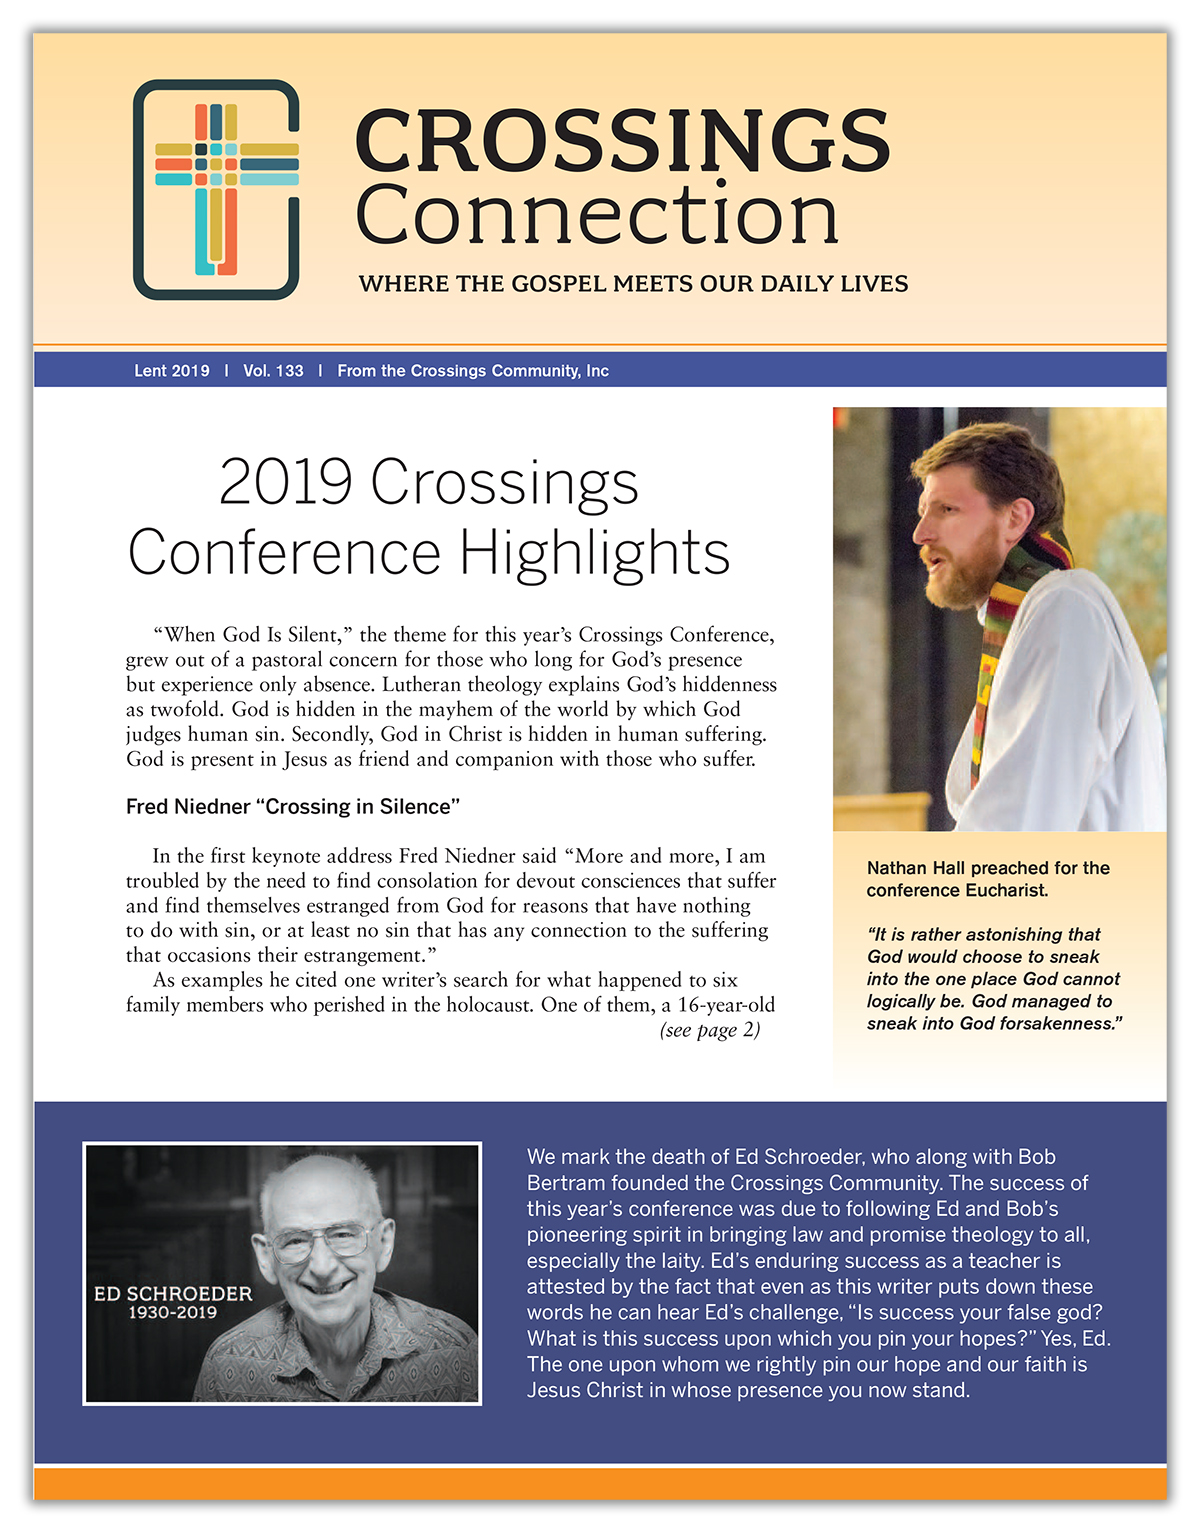 http://crossings.org/wp-content/uploads/2018/12/Crossings-Connection-Dec2018.pdf